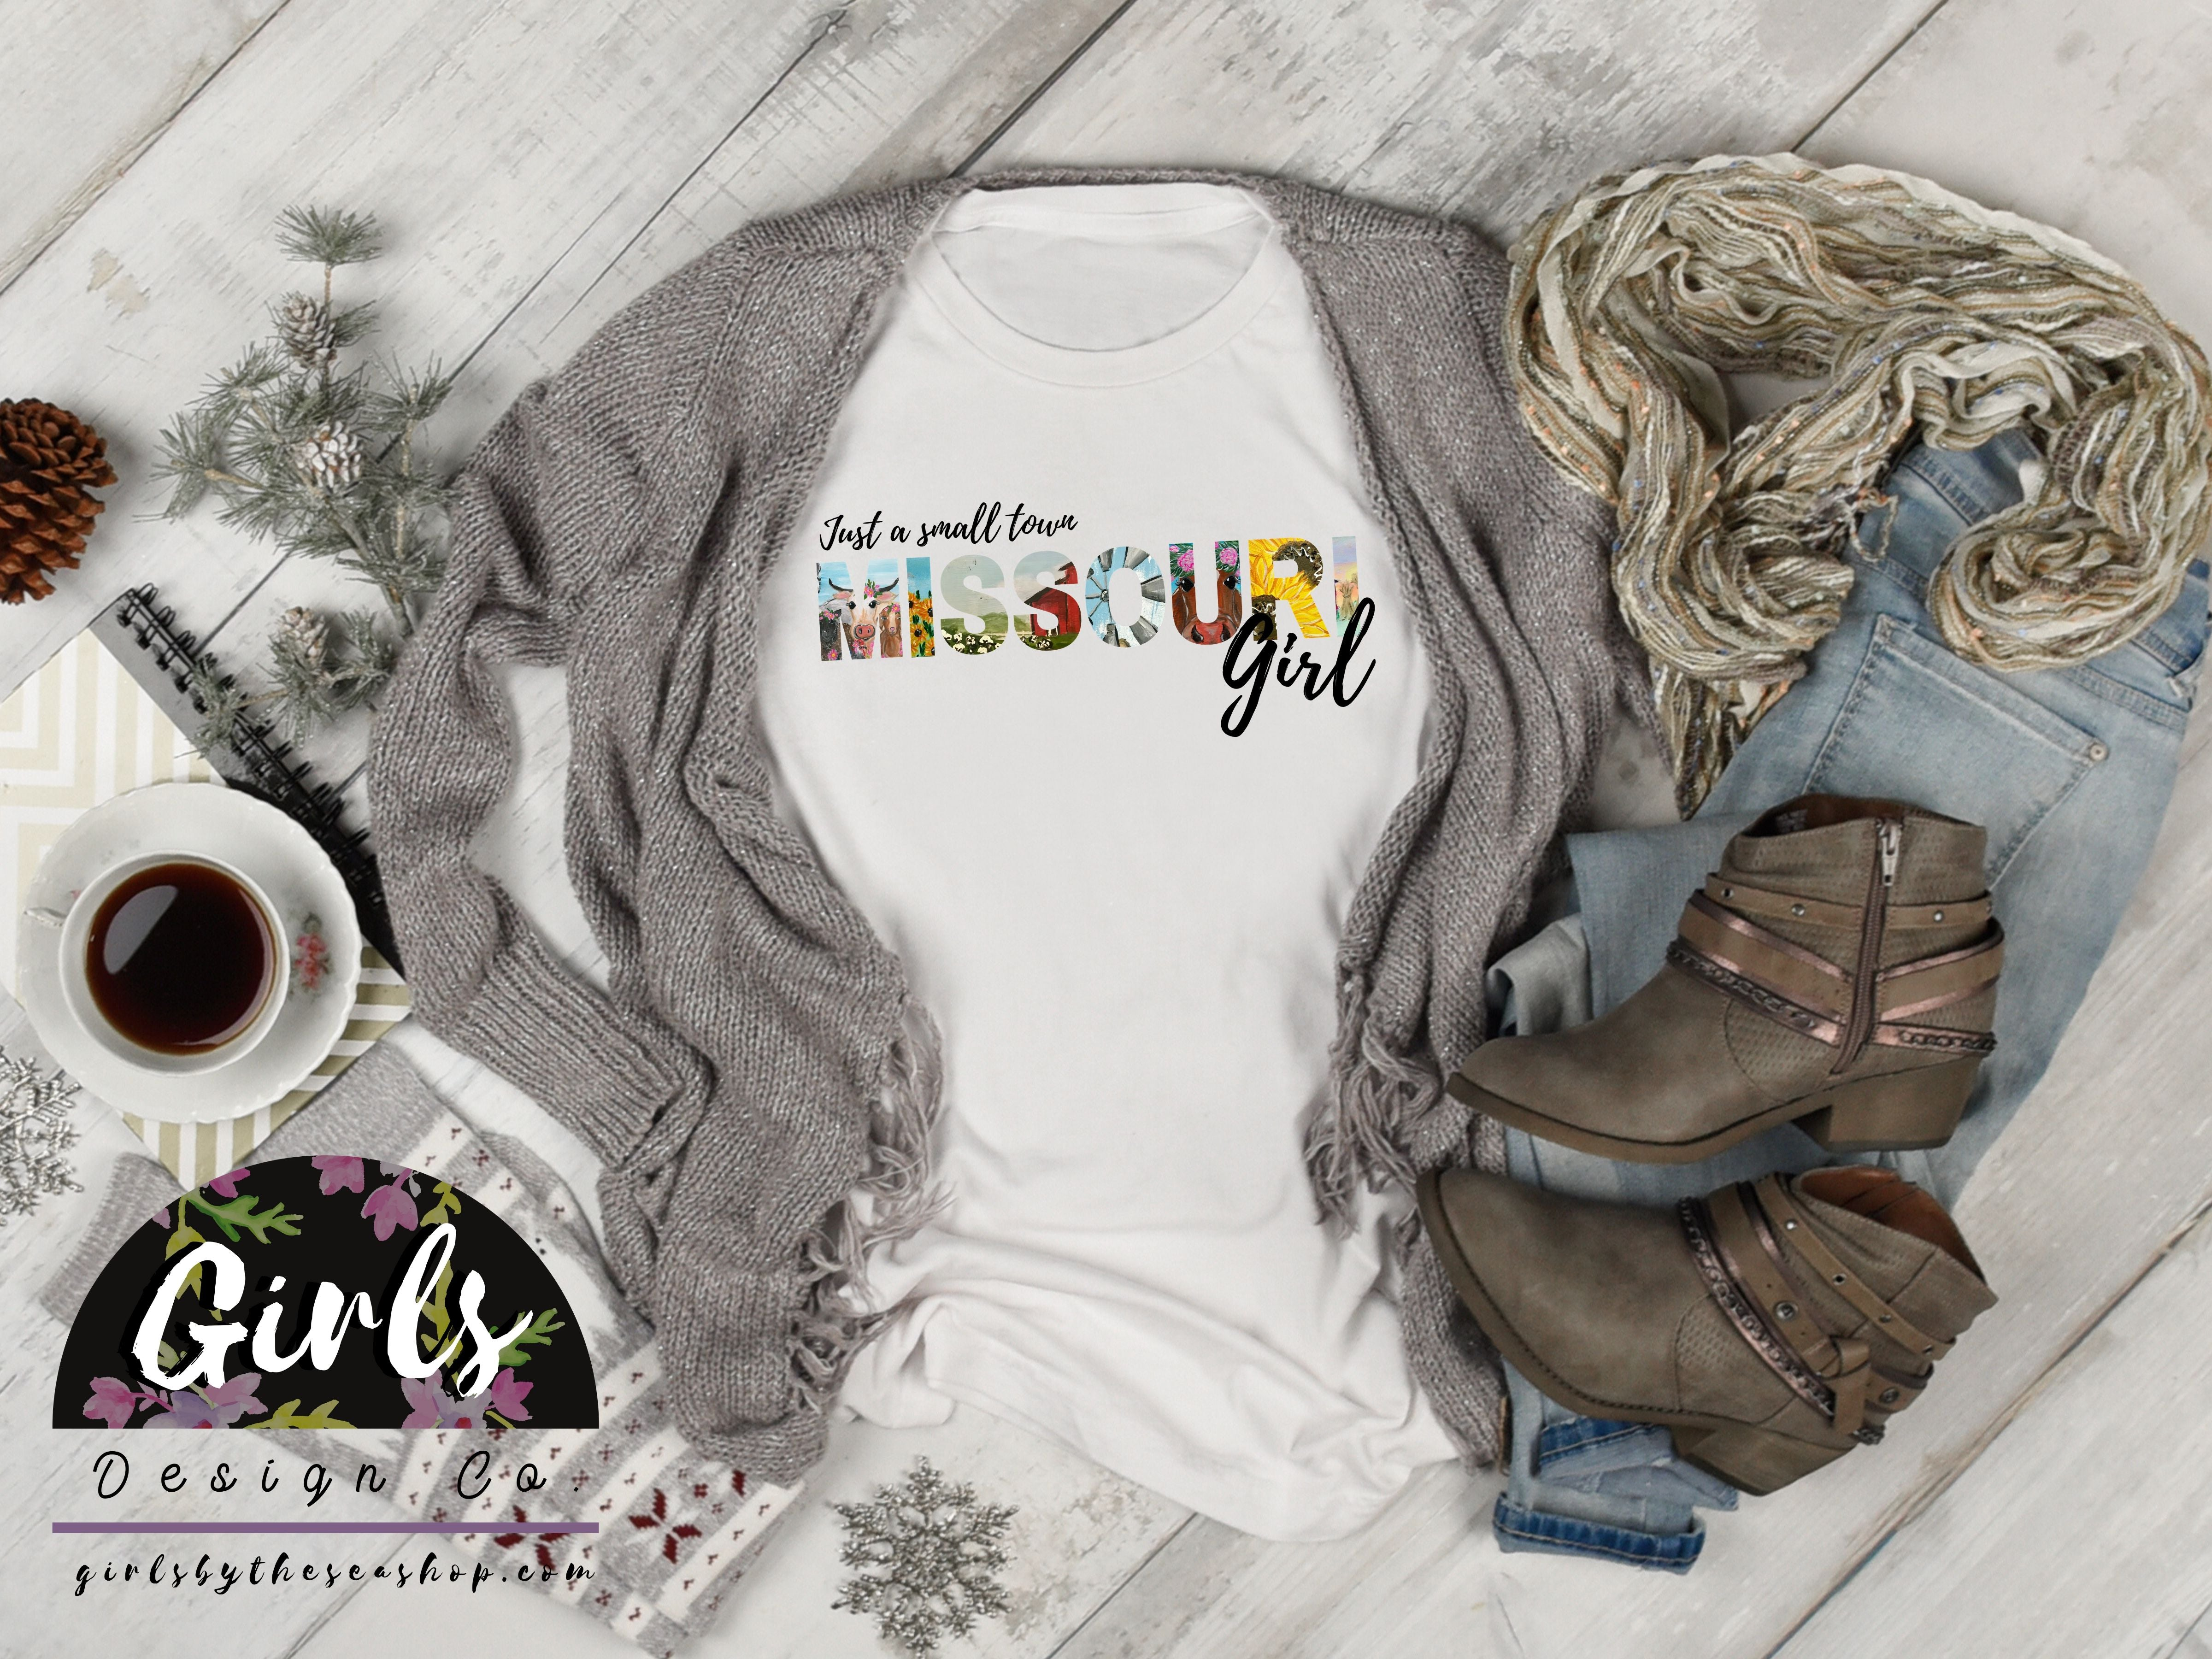 MISSOURI Small Town Girl T-Shirt - Adults / Youth / Baby-Gift, missouri, retailshirts, State-Shop-Wholesale-Womens-Boutique-Custom-Graphic-Tees-Branding-Gifts